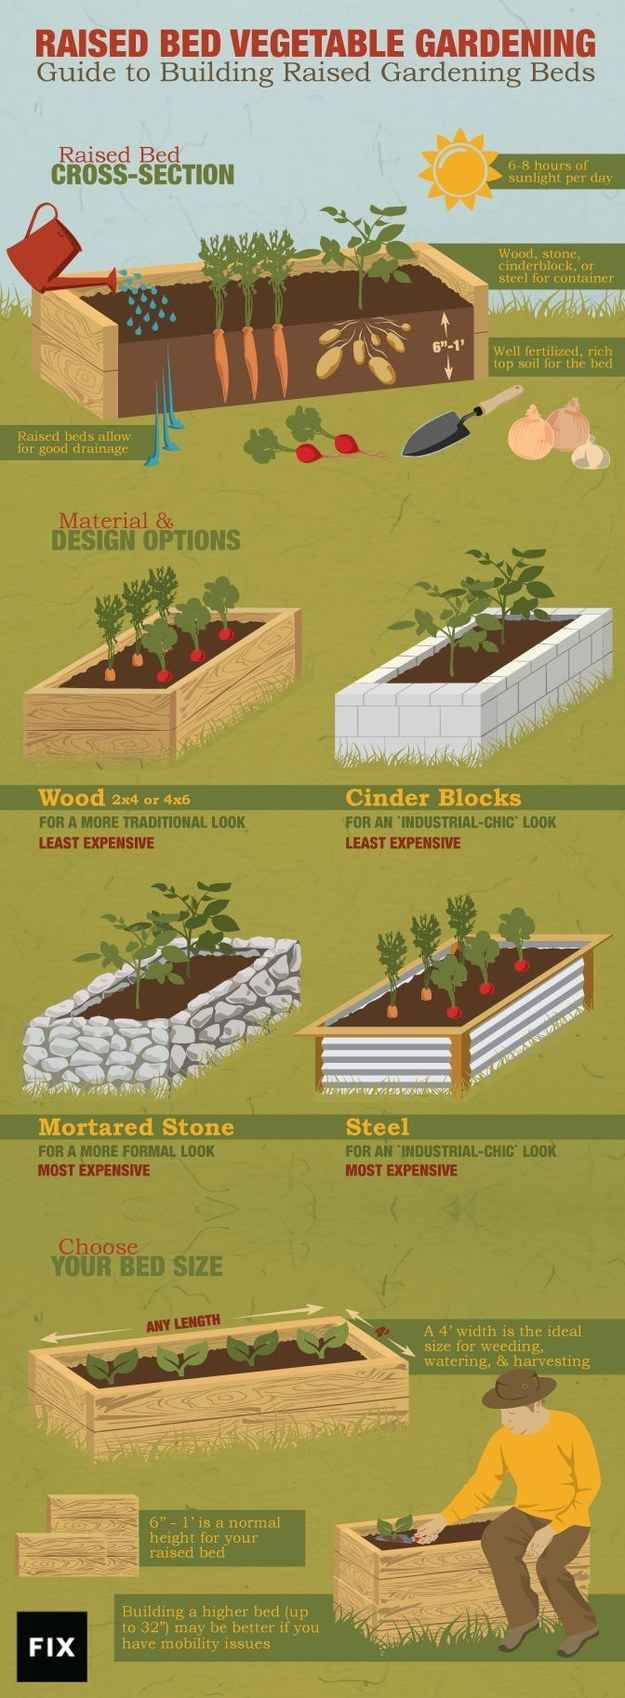 raised gardening beds keep vegetables away from contaminated soil, can  deter some pests, and are easier on backs and knees—here's some information  about how